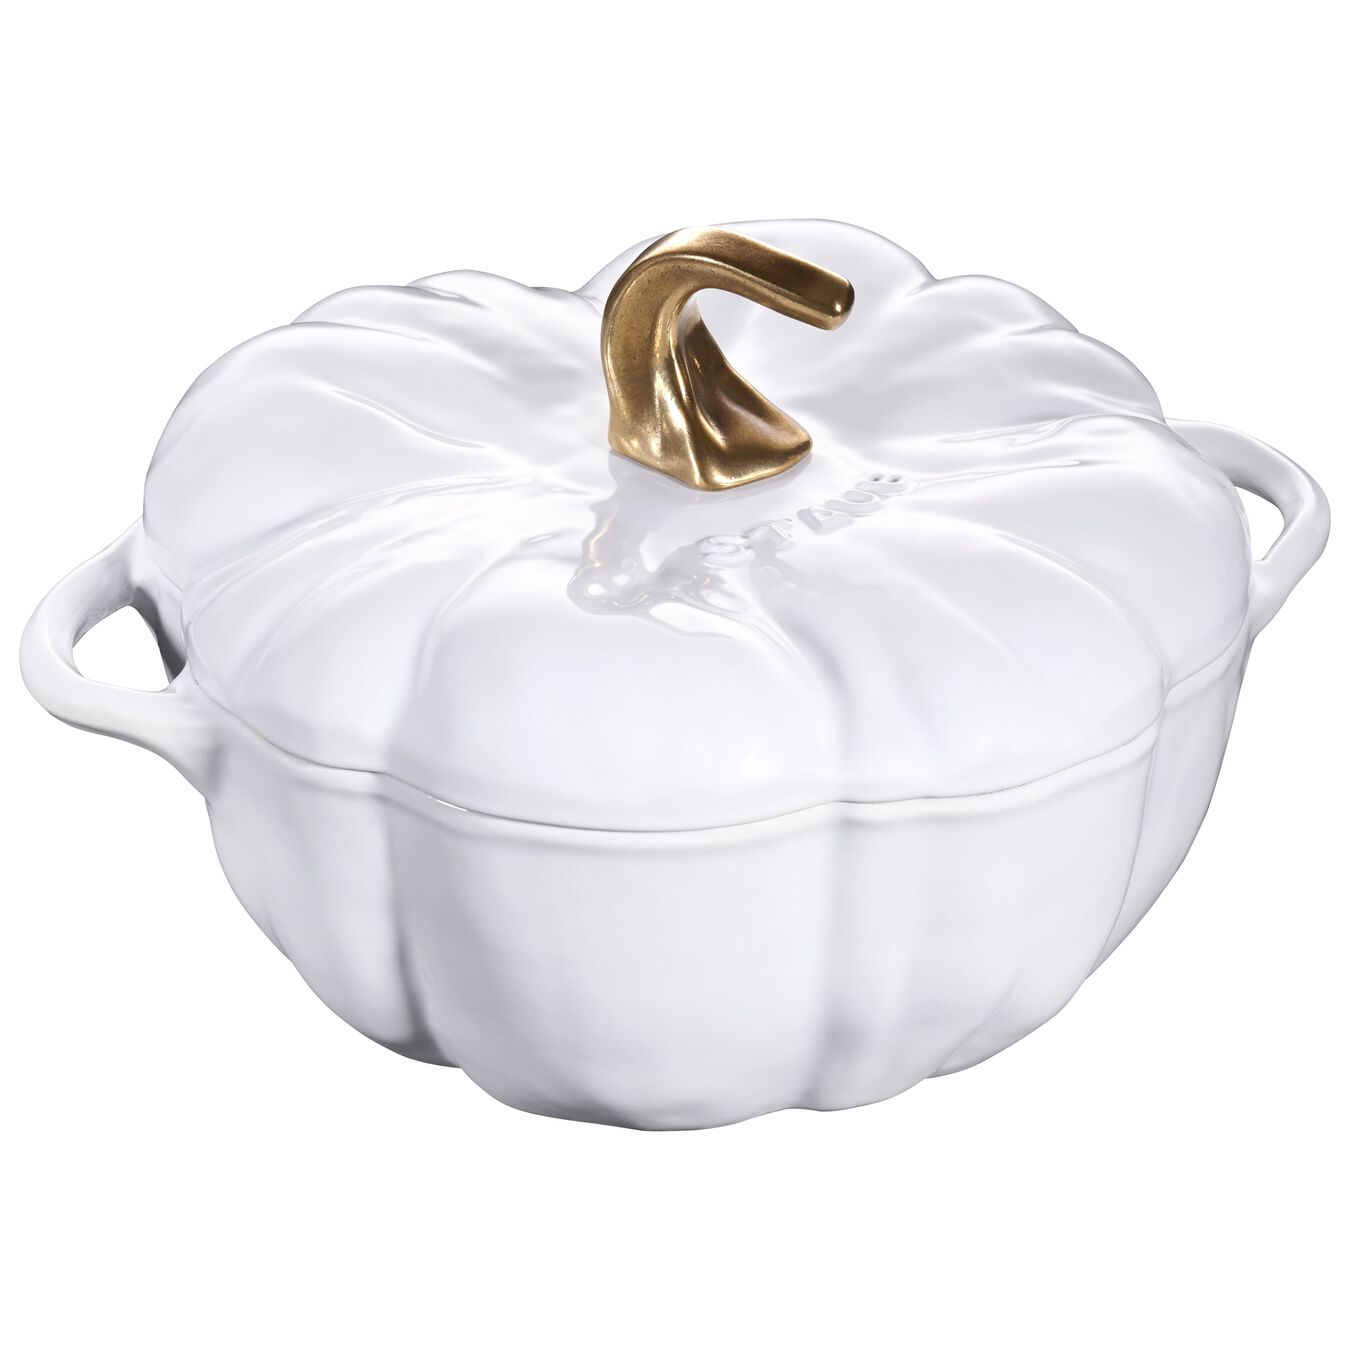 3,5 l Cast iron Citrouille Faitout, Pure-White,,large 1